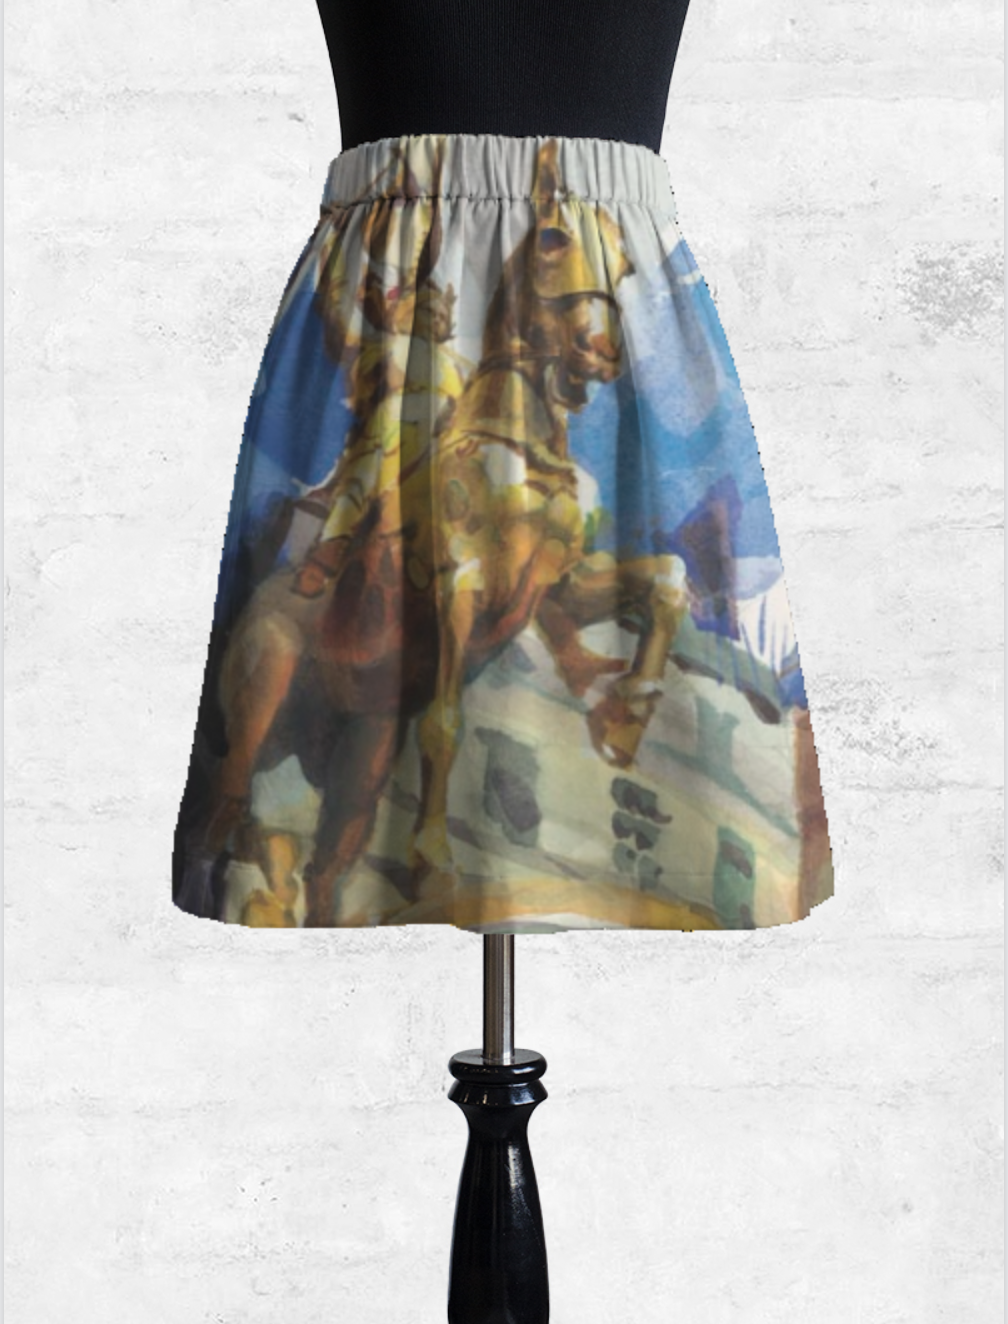 Skirts-WilliamHeydt-VidaCollection2018-1.png